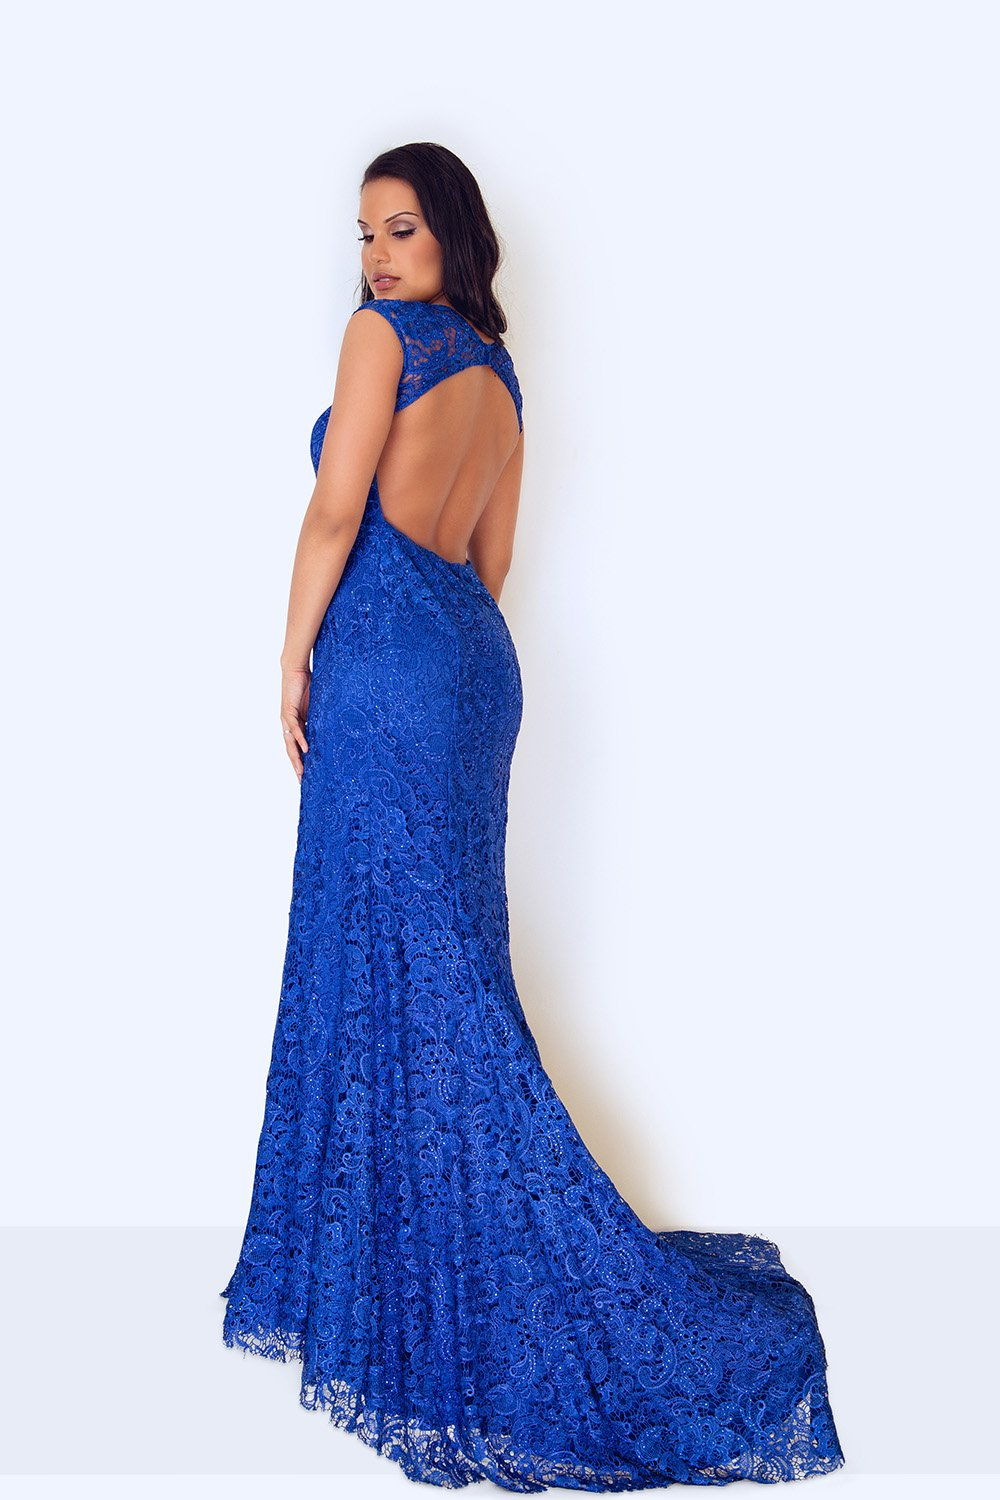 Kanti Long Blue Lace Dress